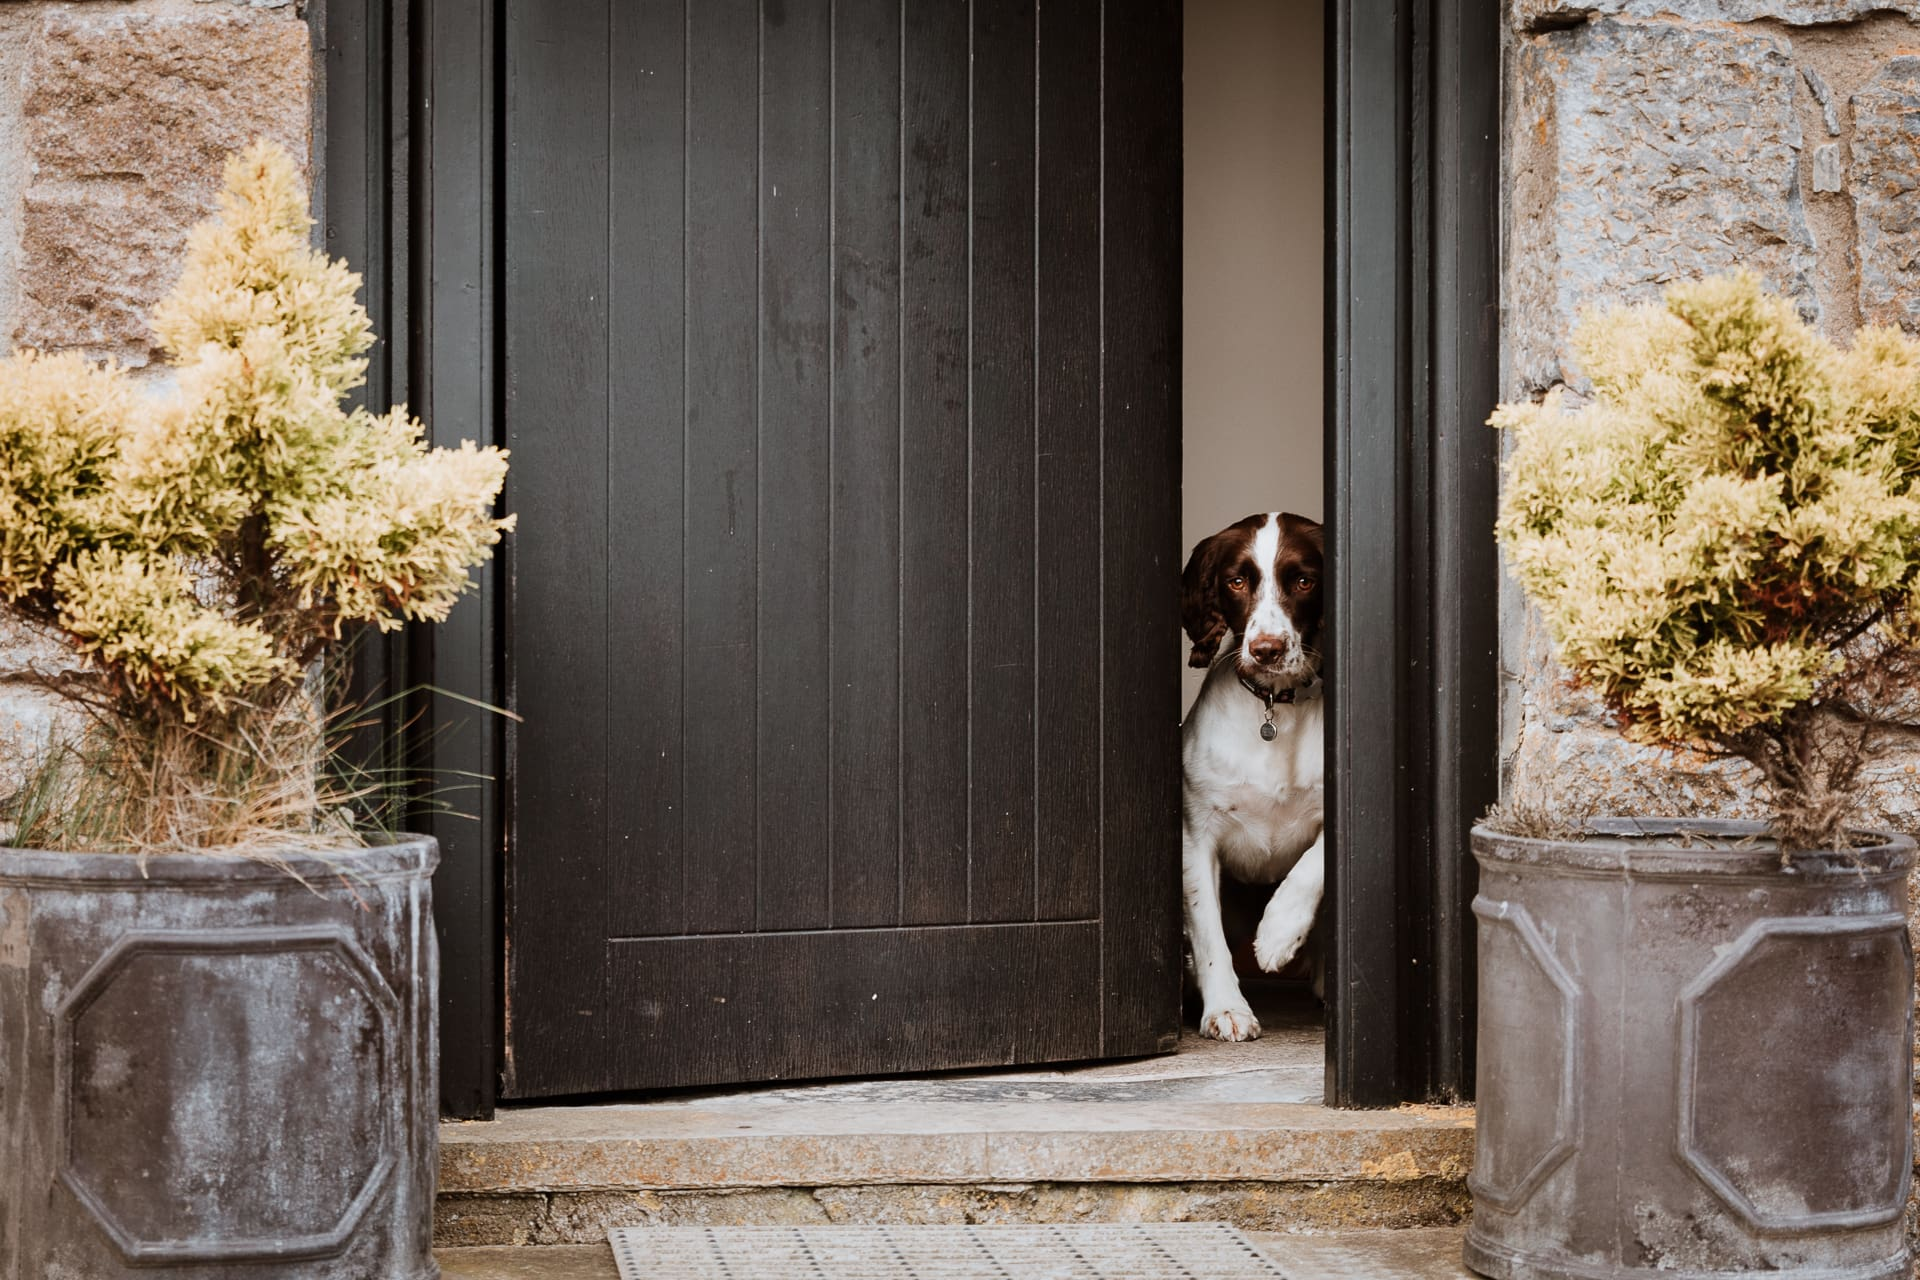 Springer spaniel peeking out of a front door